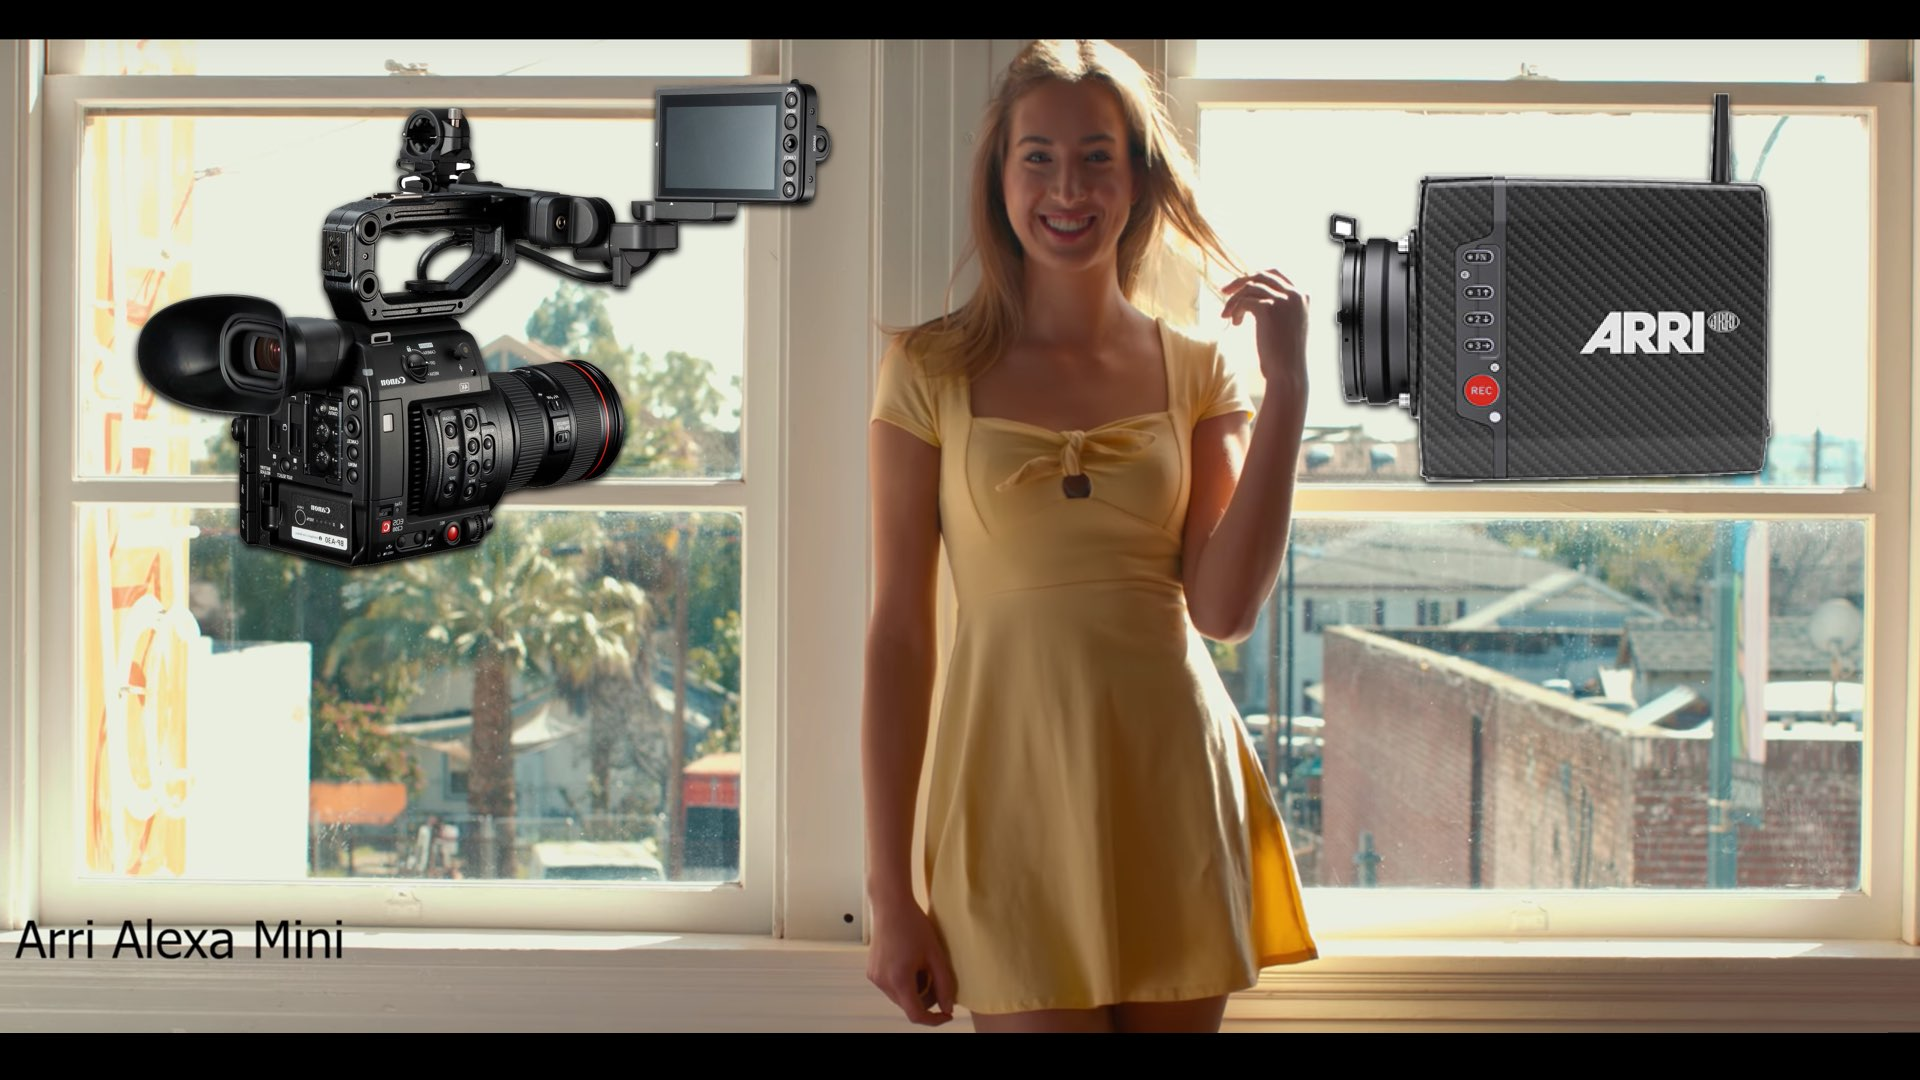 ARRI ALEXA Mini vs Canon C200: A Cinematographic Comparison - Y M